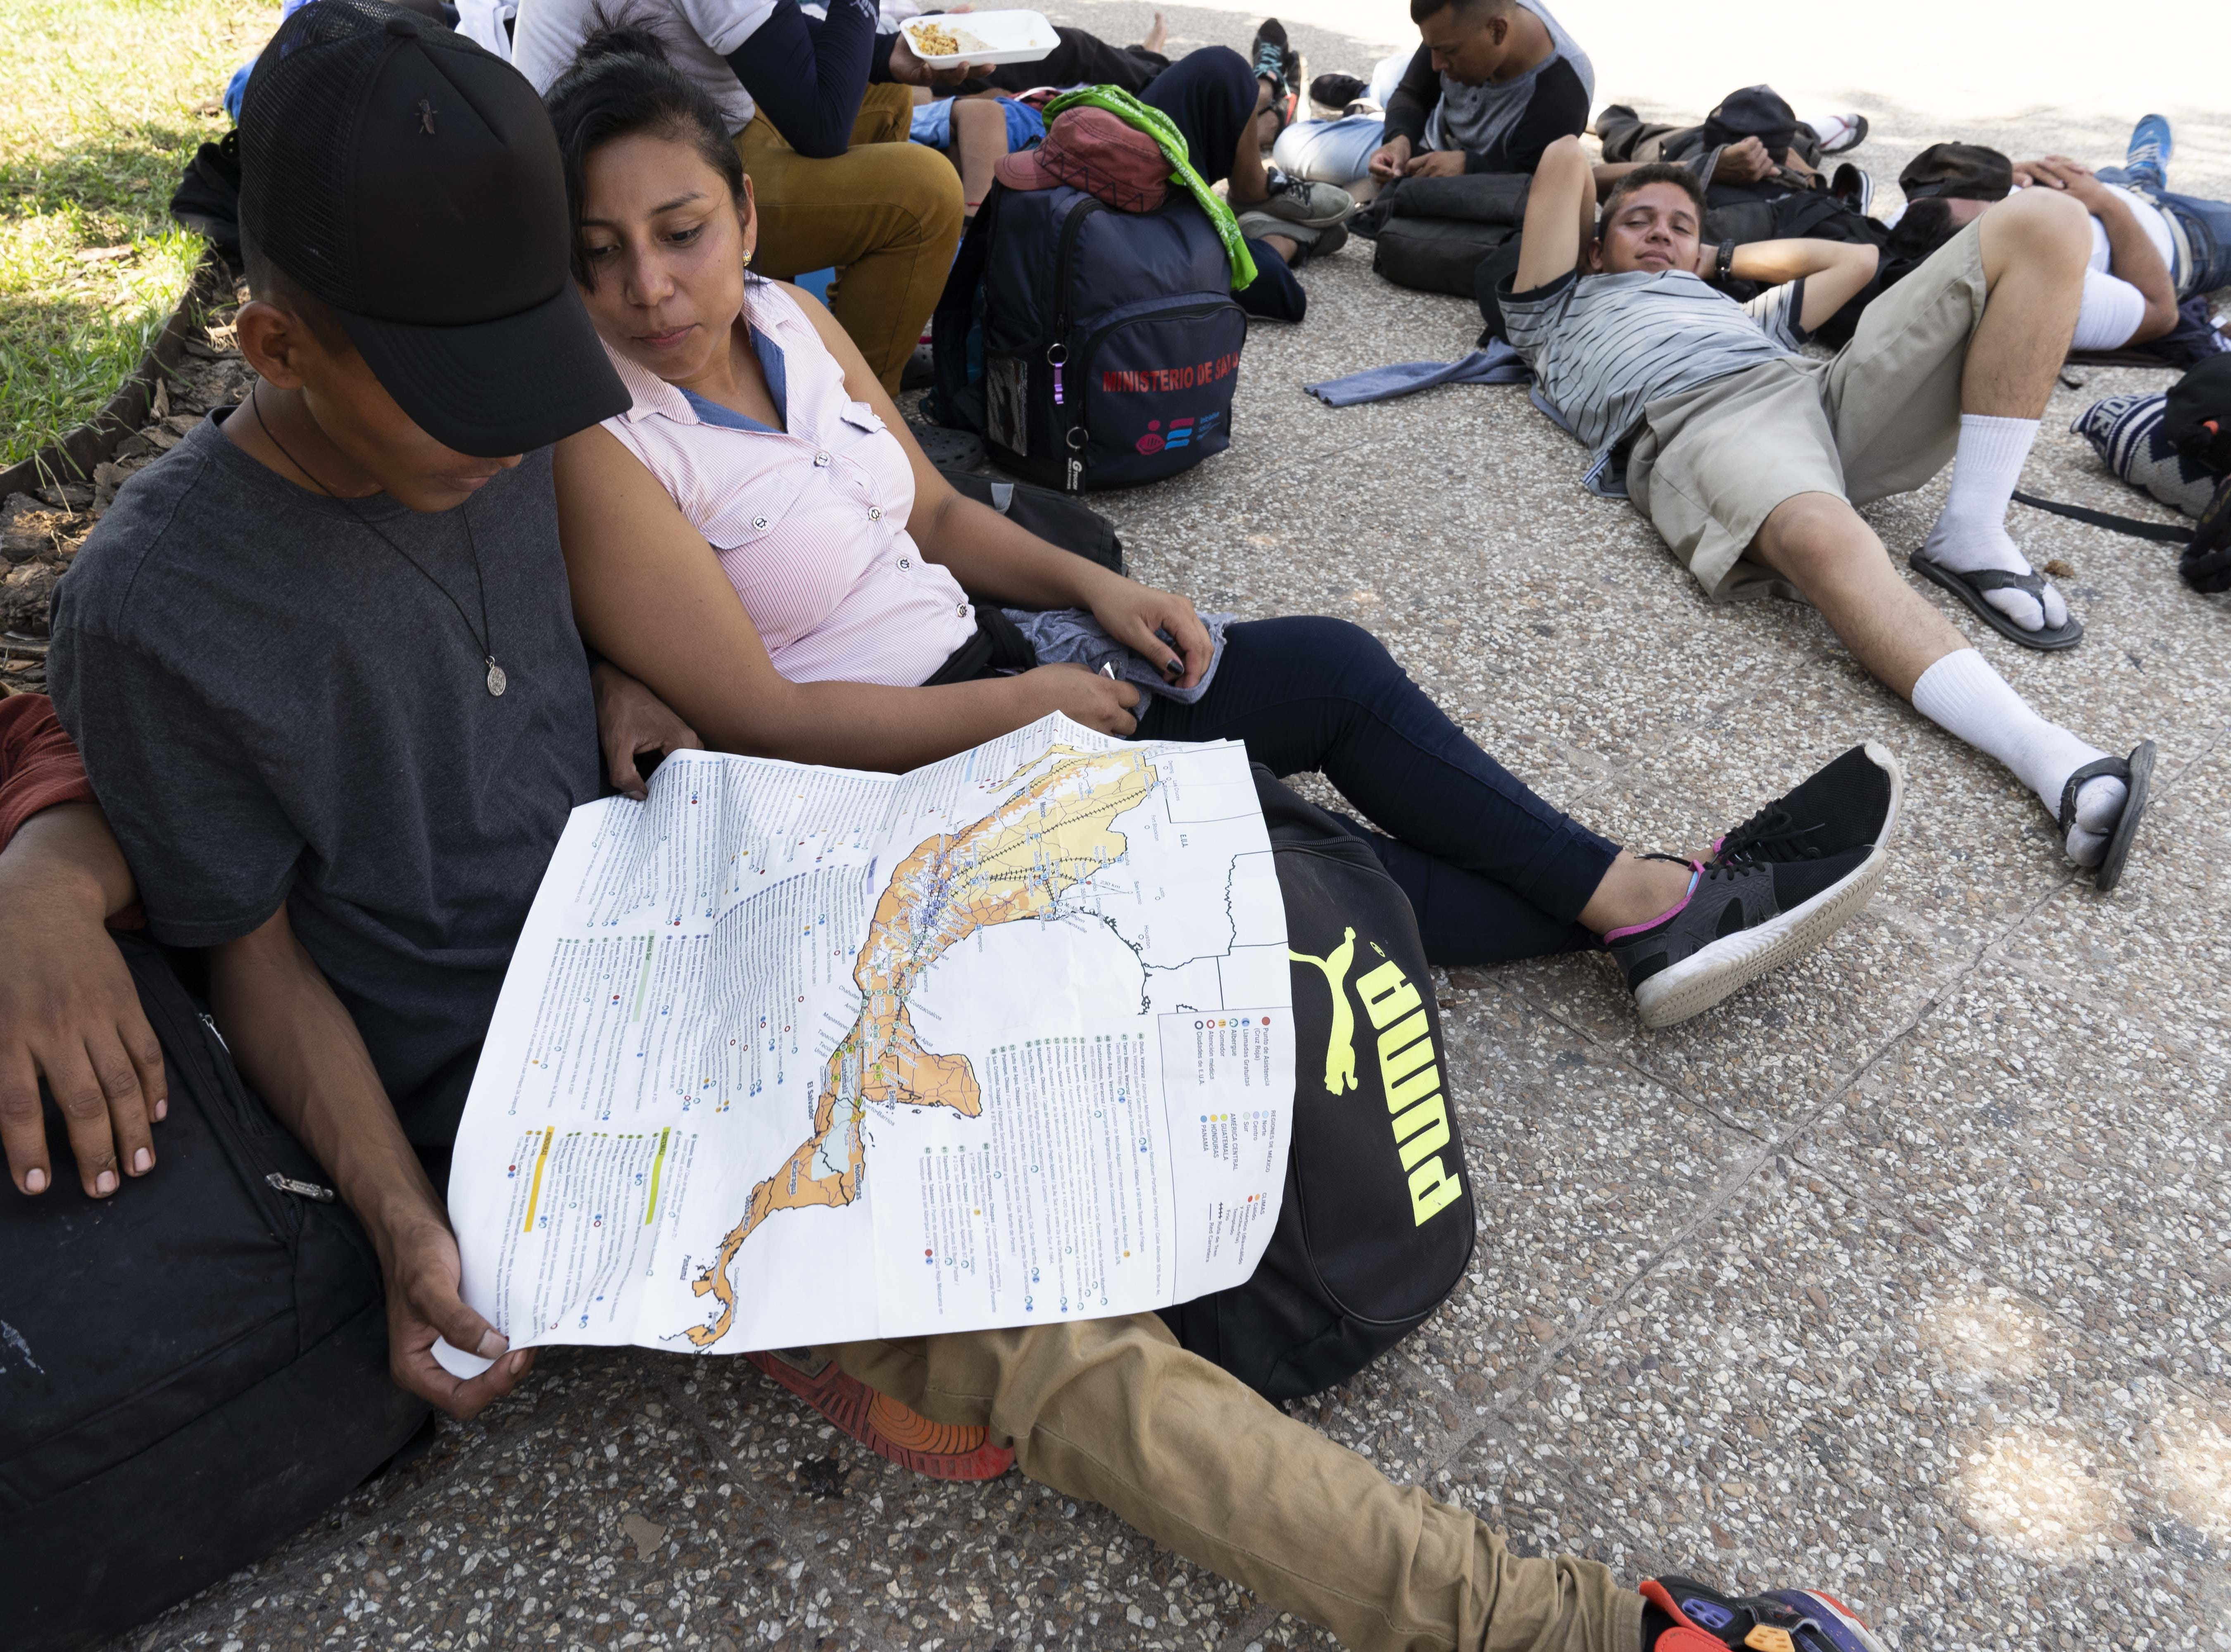 Kevin Vladimir of El Salvador joined another group of migrants preparing to cross into Mexico from Guatemala. He looks over the route map Nov. 1, 2018.